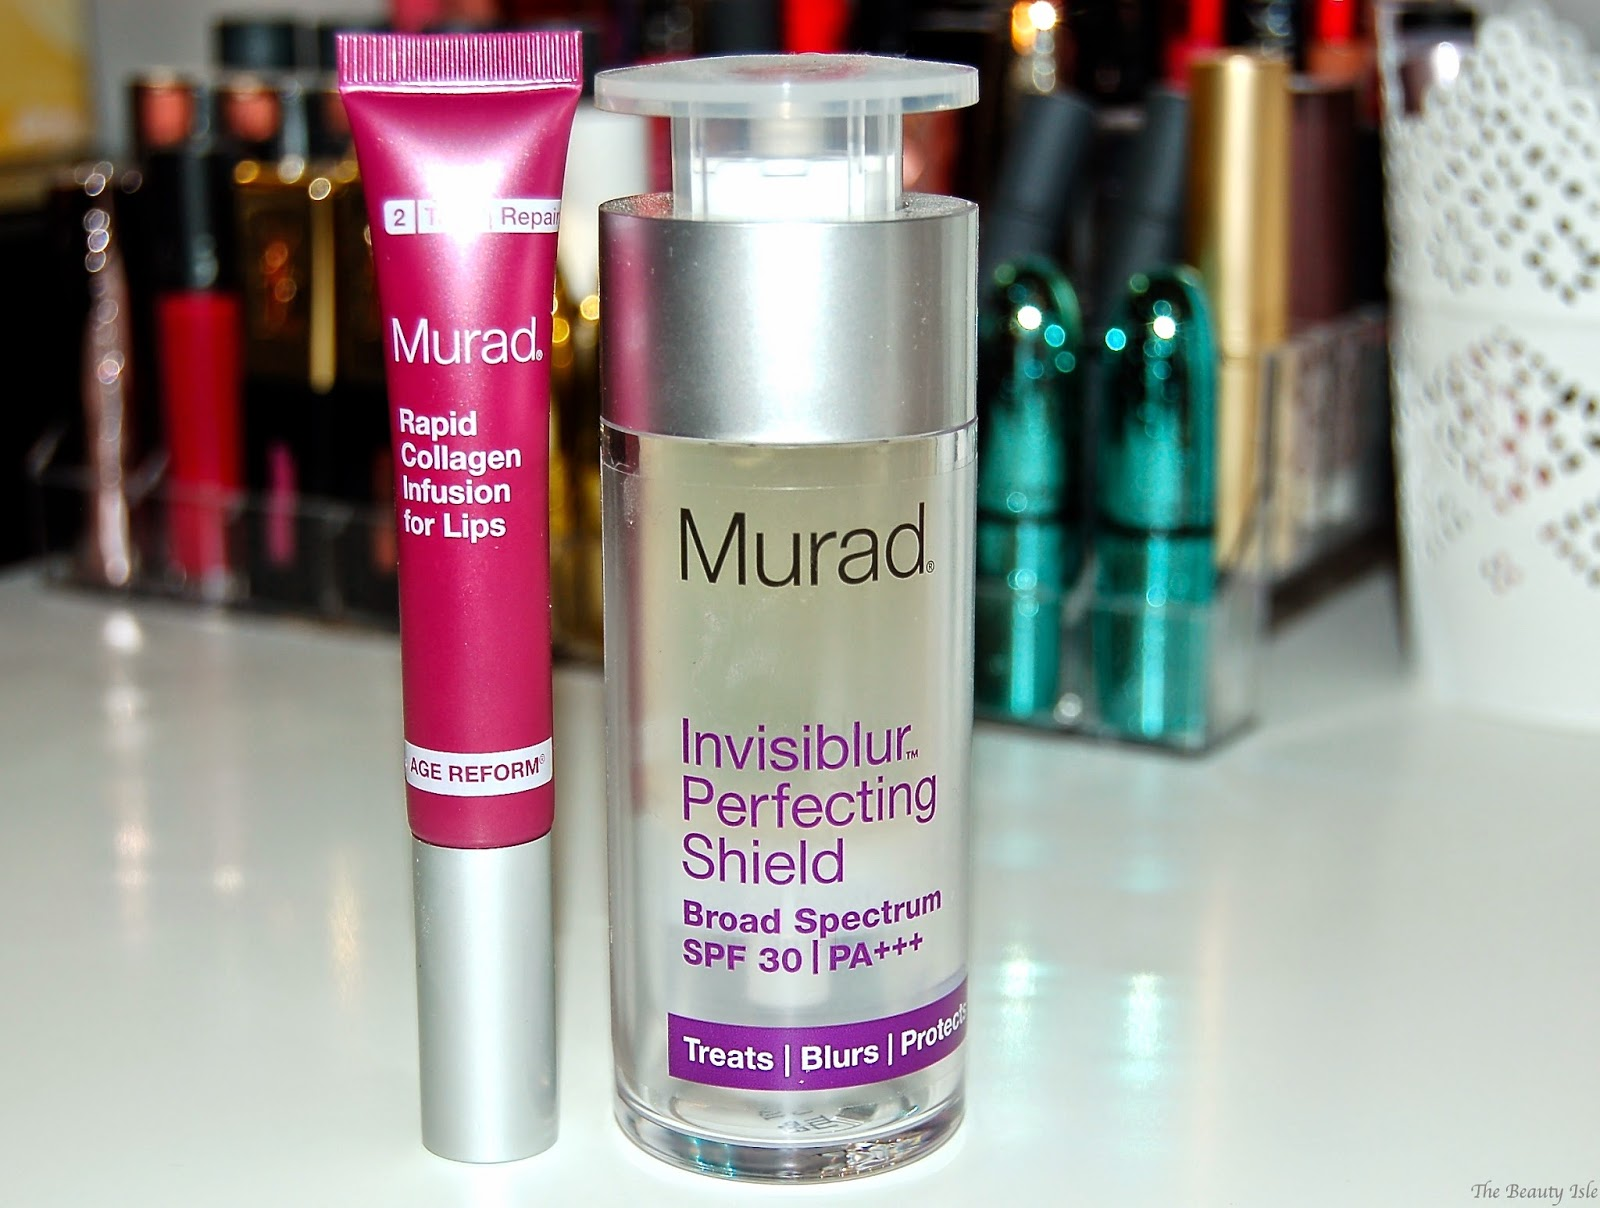 Murad Rapid Collagen Infusion for Lips & Invisiblur Perfecting Shield Primer